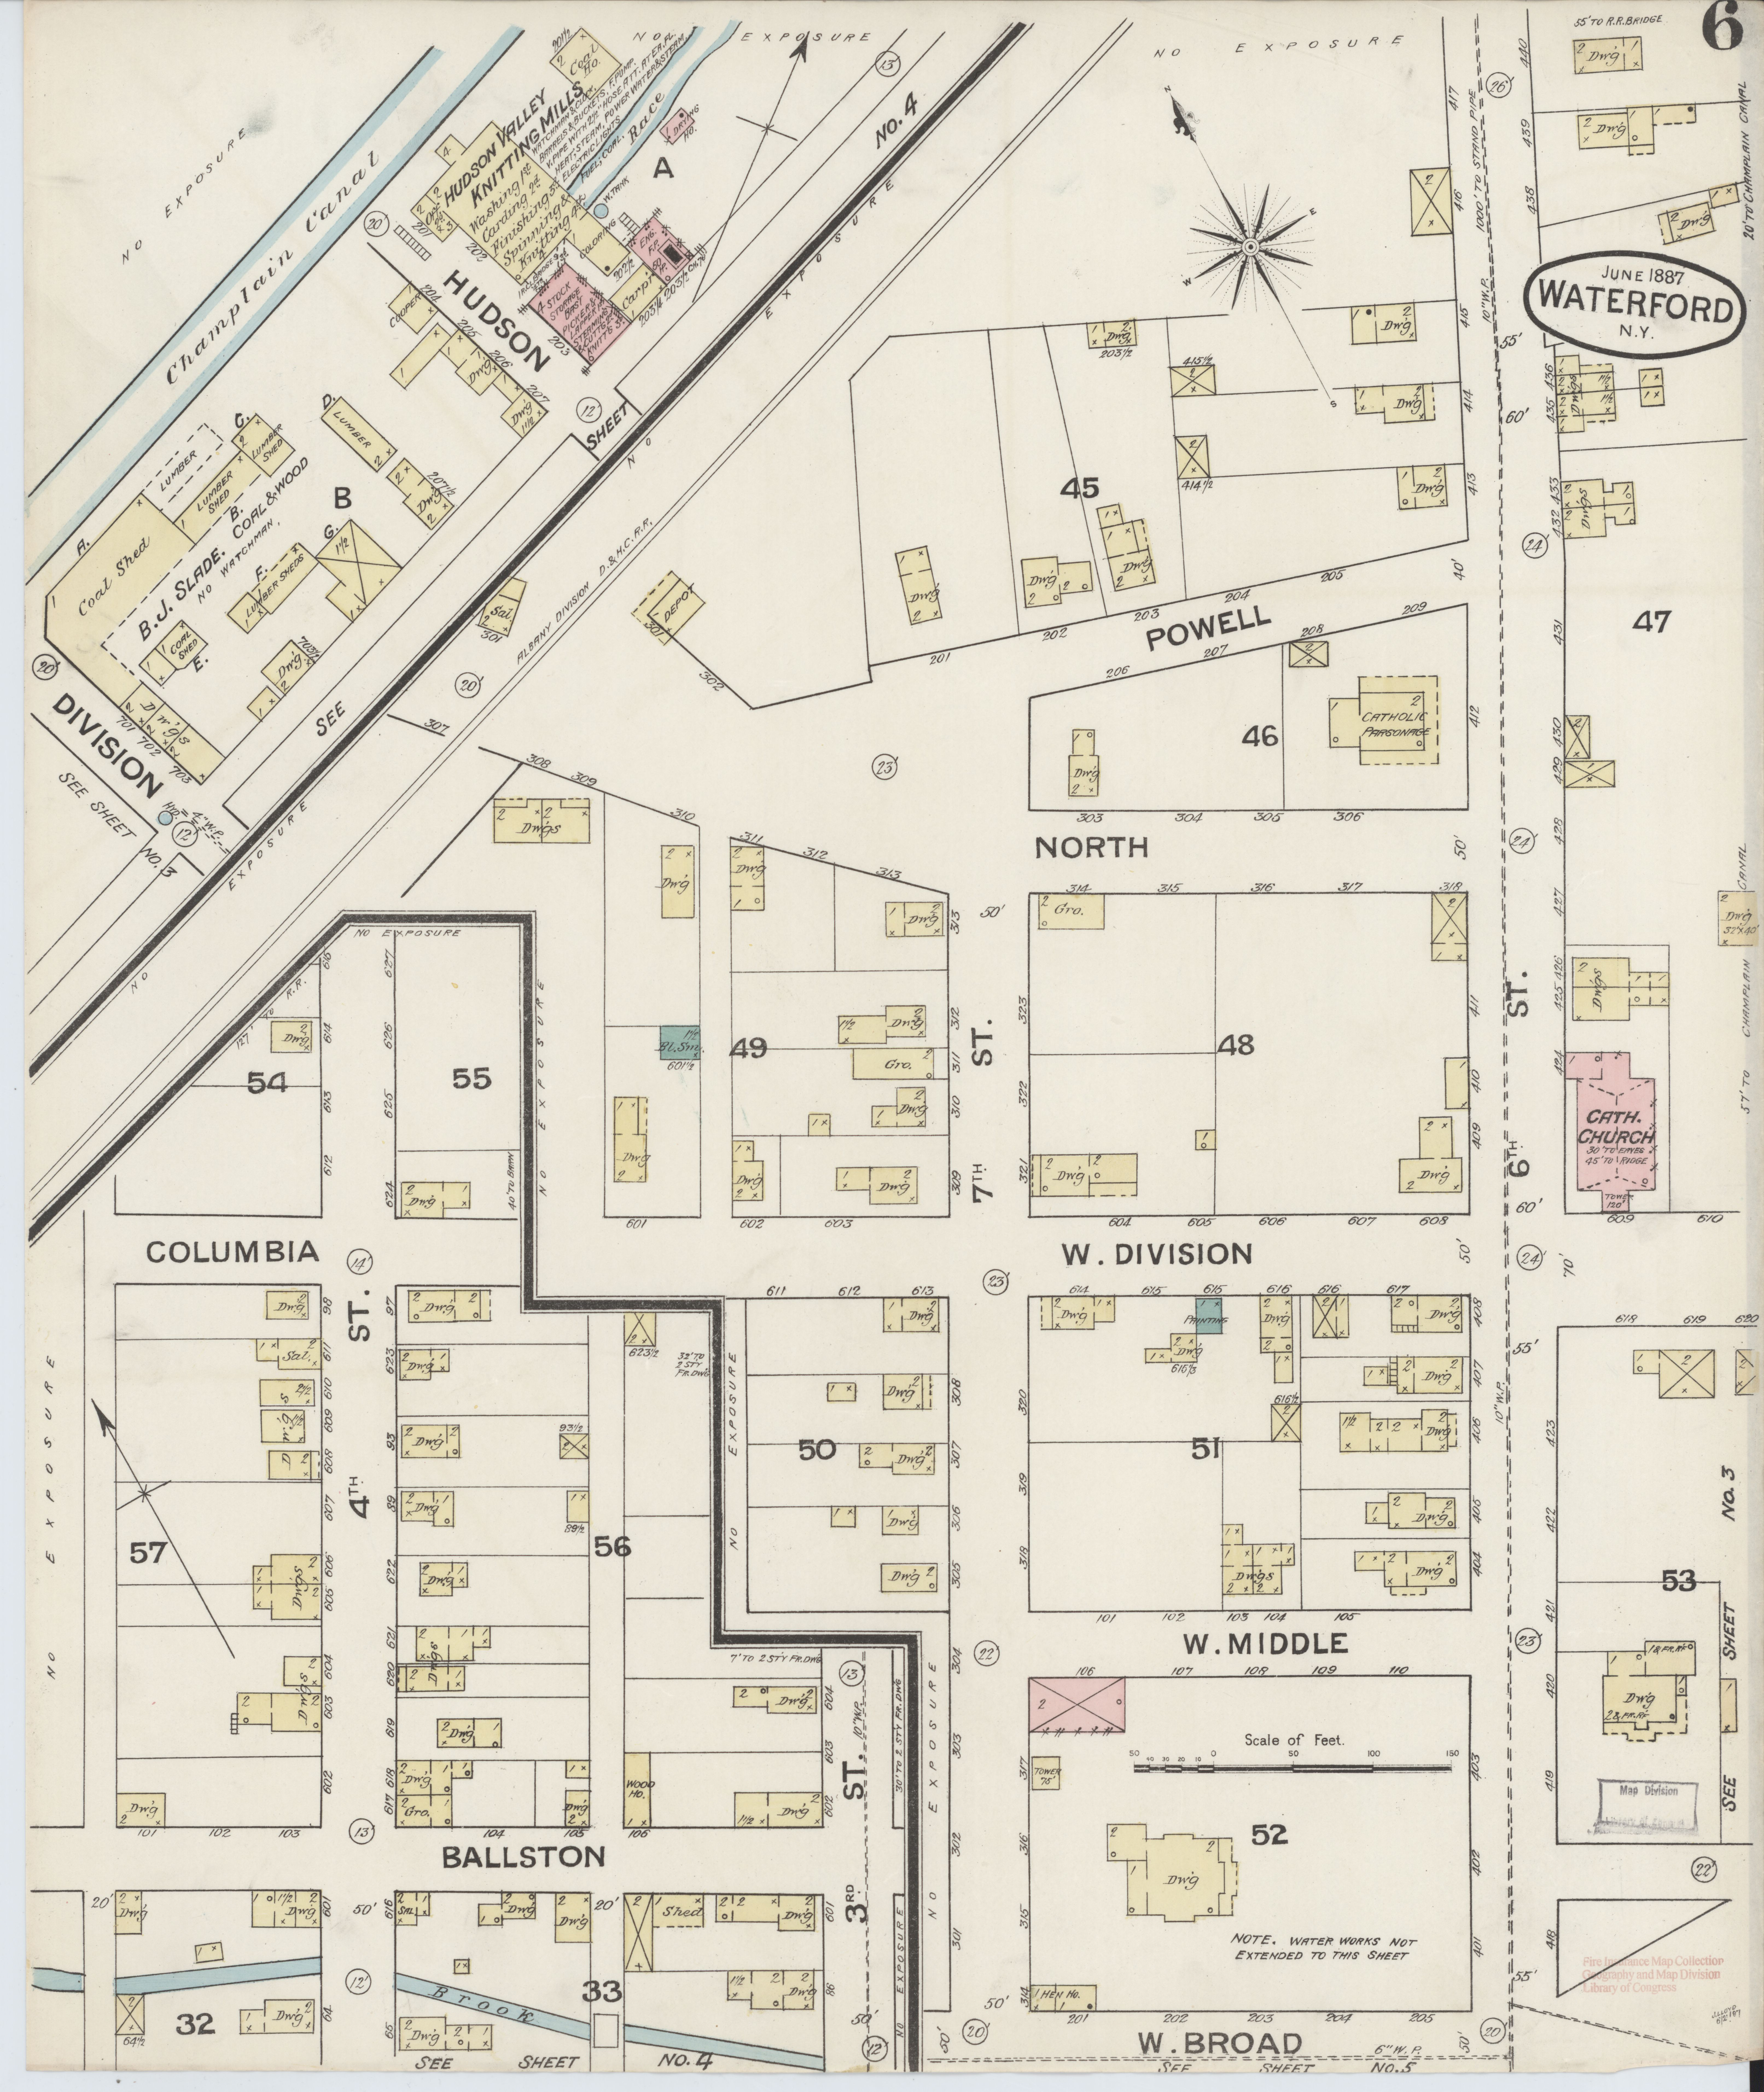 File:Sanborn Fire Insurance Map from Waterford, Saratoga County